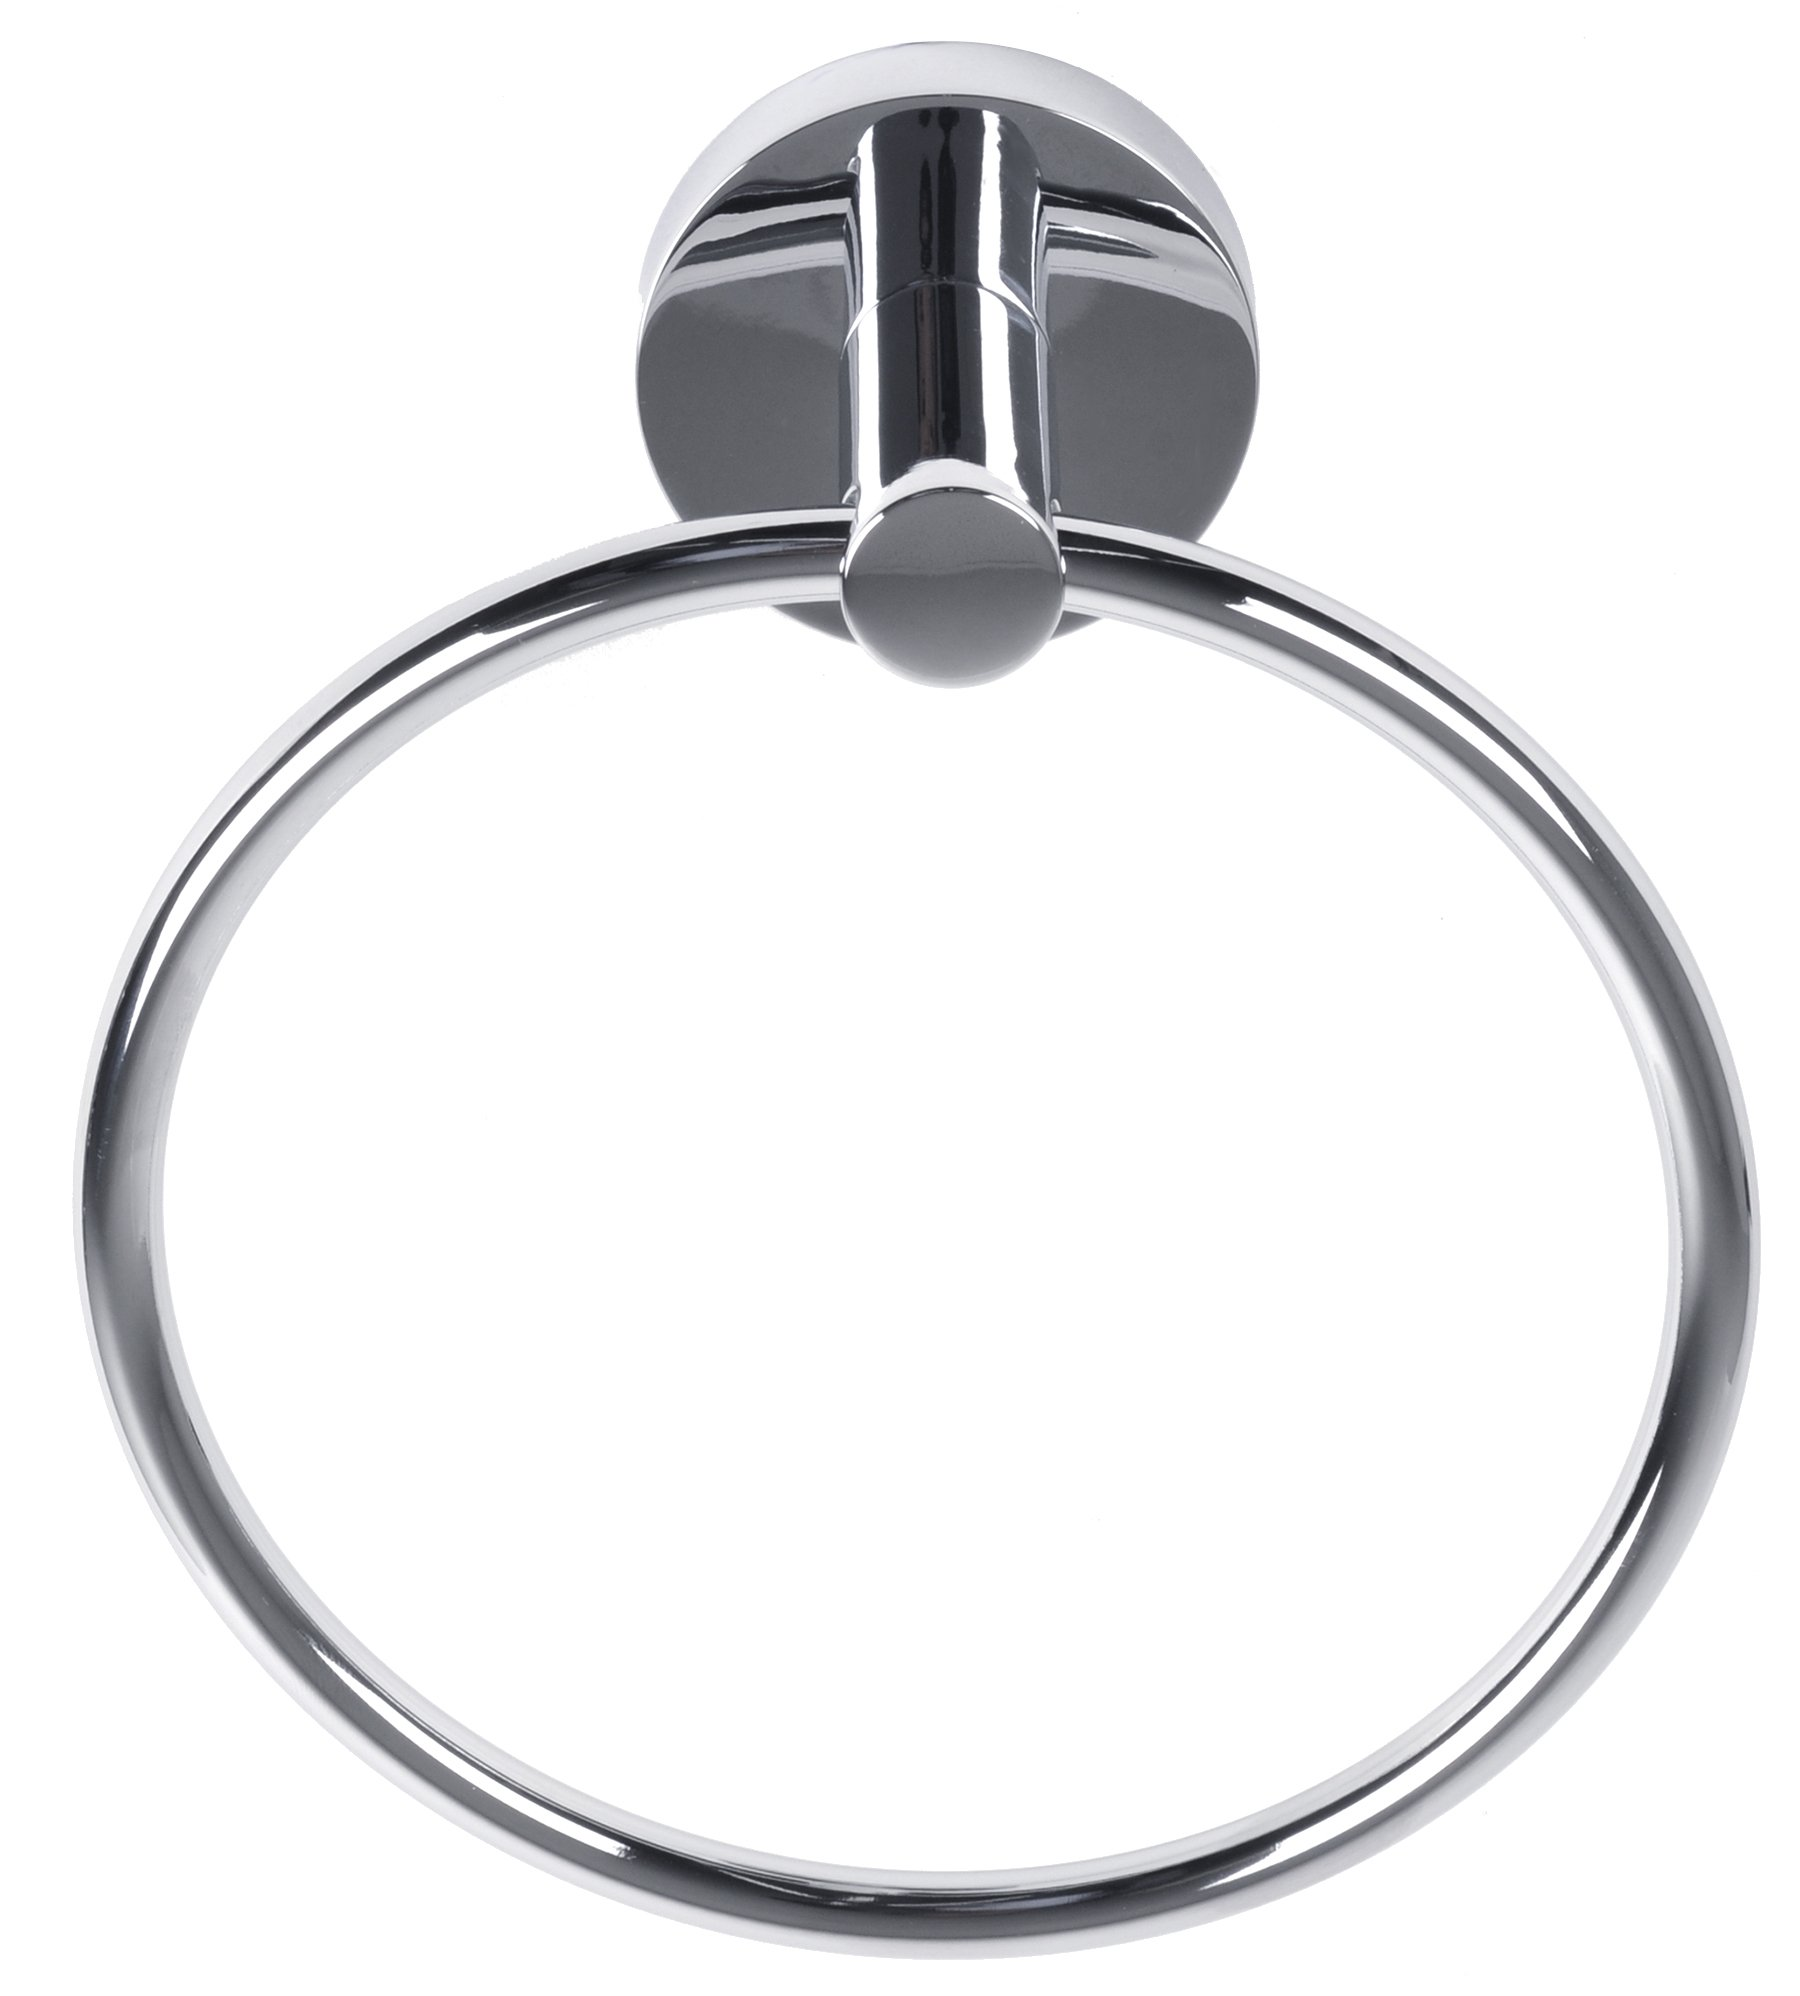 Better Home Products Skyline Towel Ring, Chrome